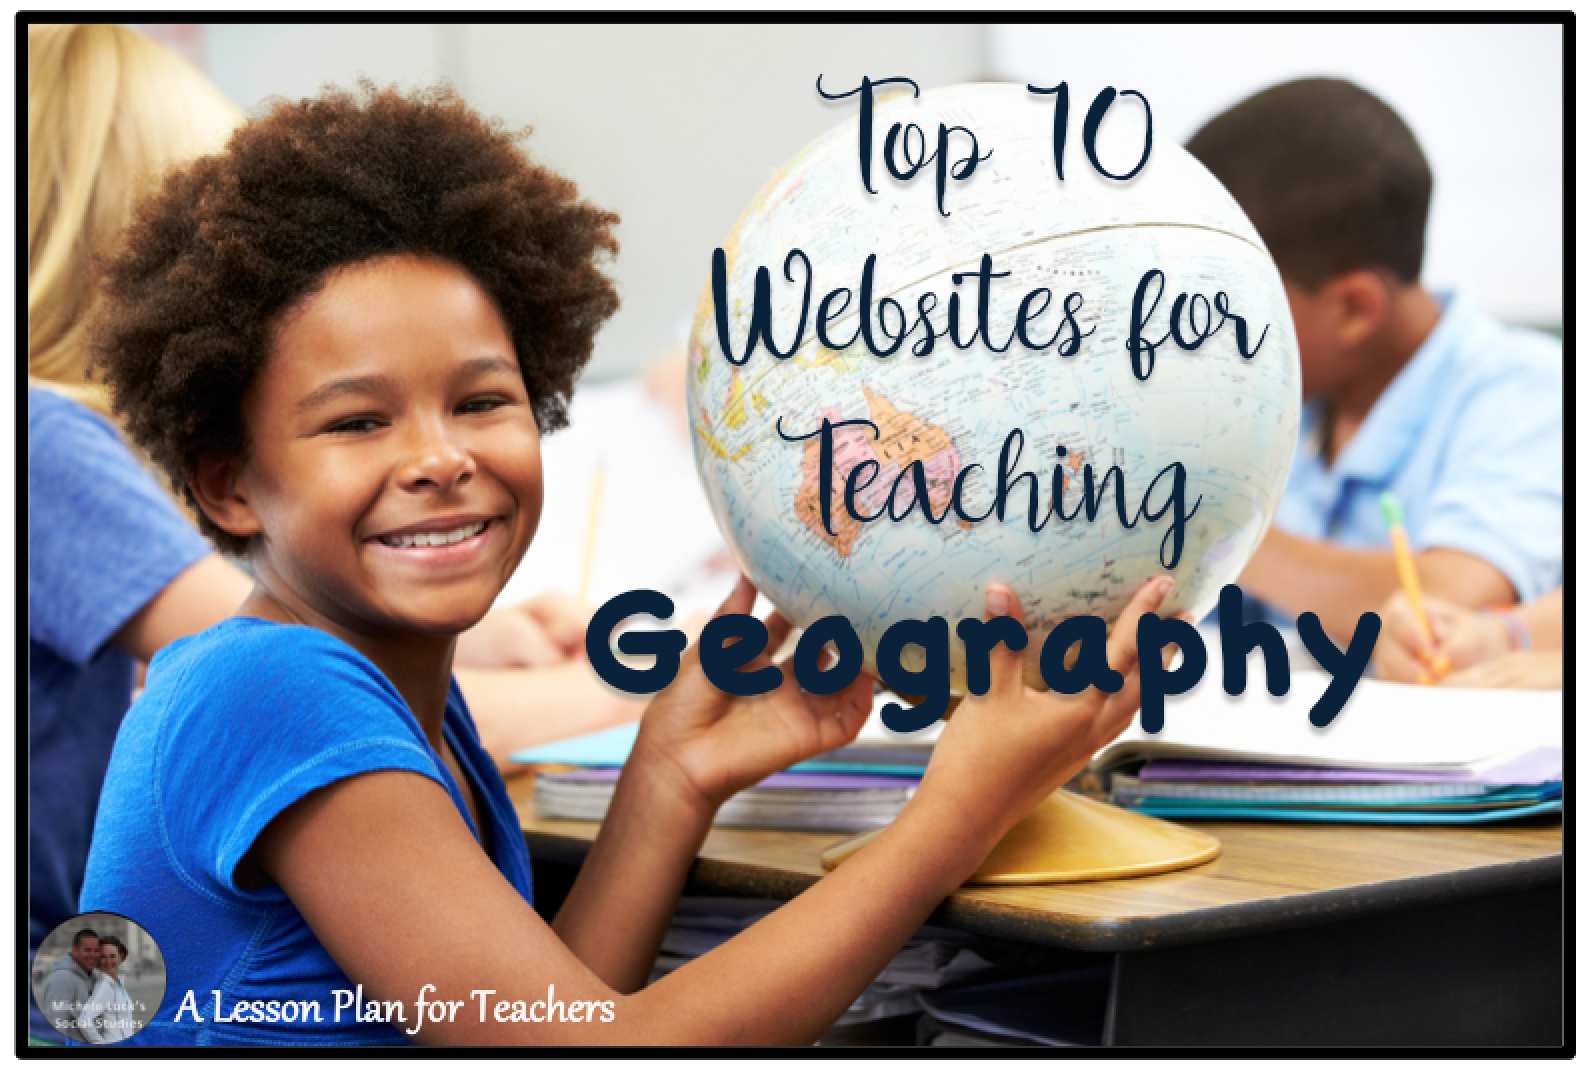 Top 10 Websites for Teaching Geography in the Social Studies